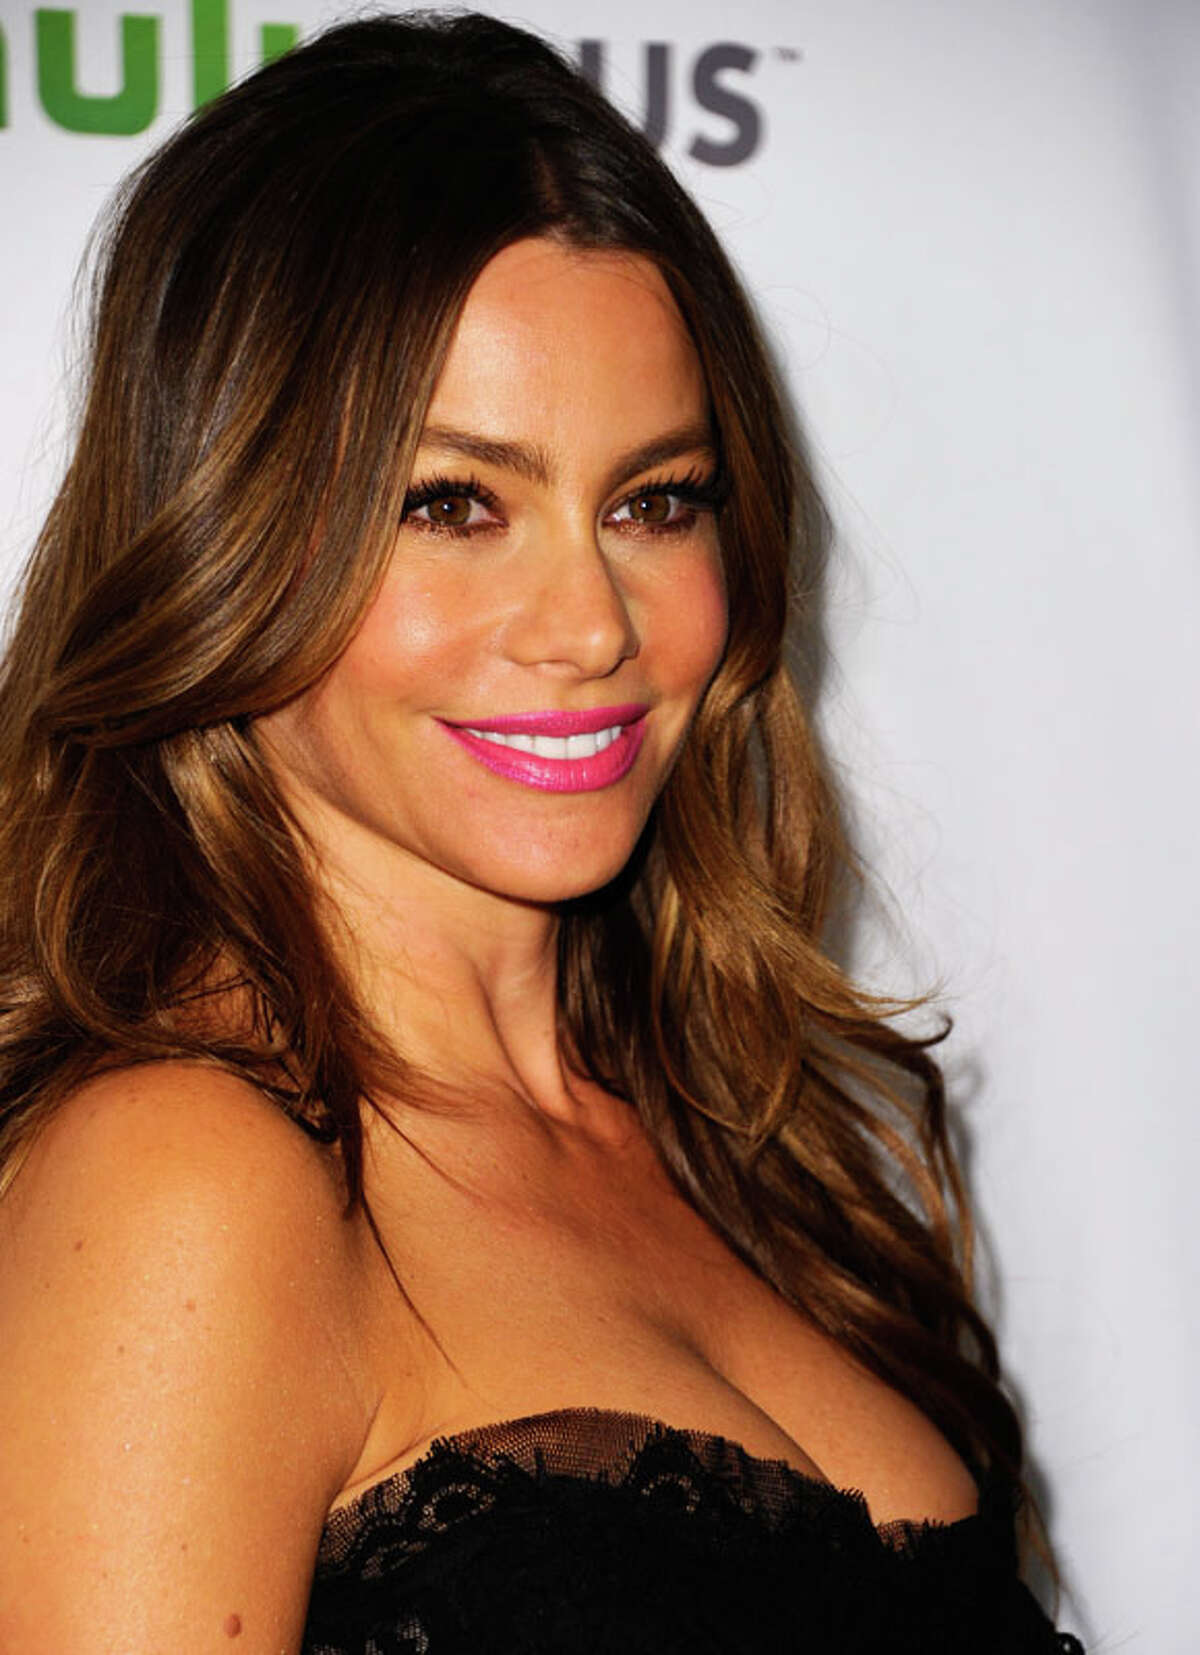 Actress Sofia Vergara was married at 18, had her son at 19 and was divorced by 22 before going into dental school. Not until after all that did she go into acting.